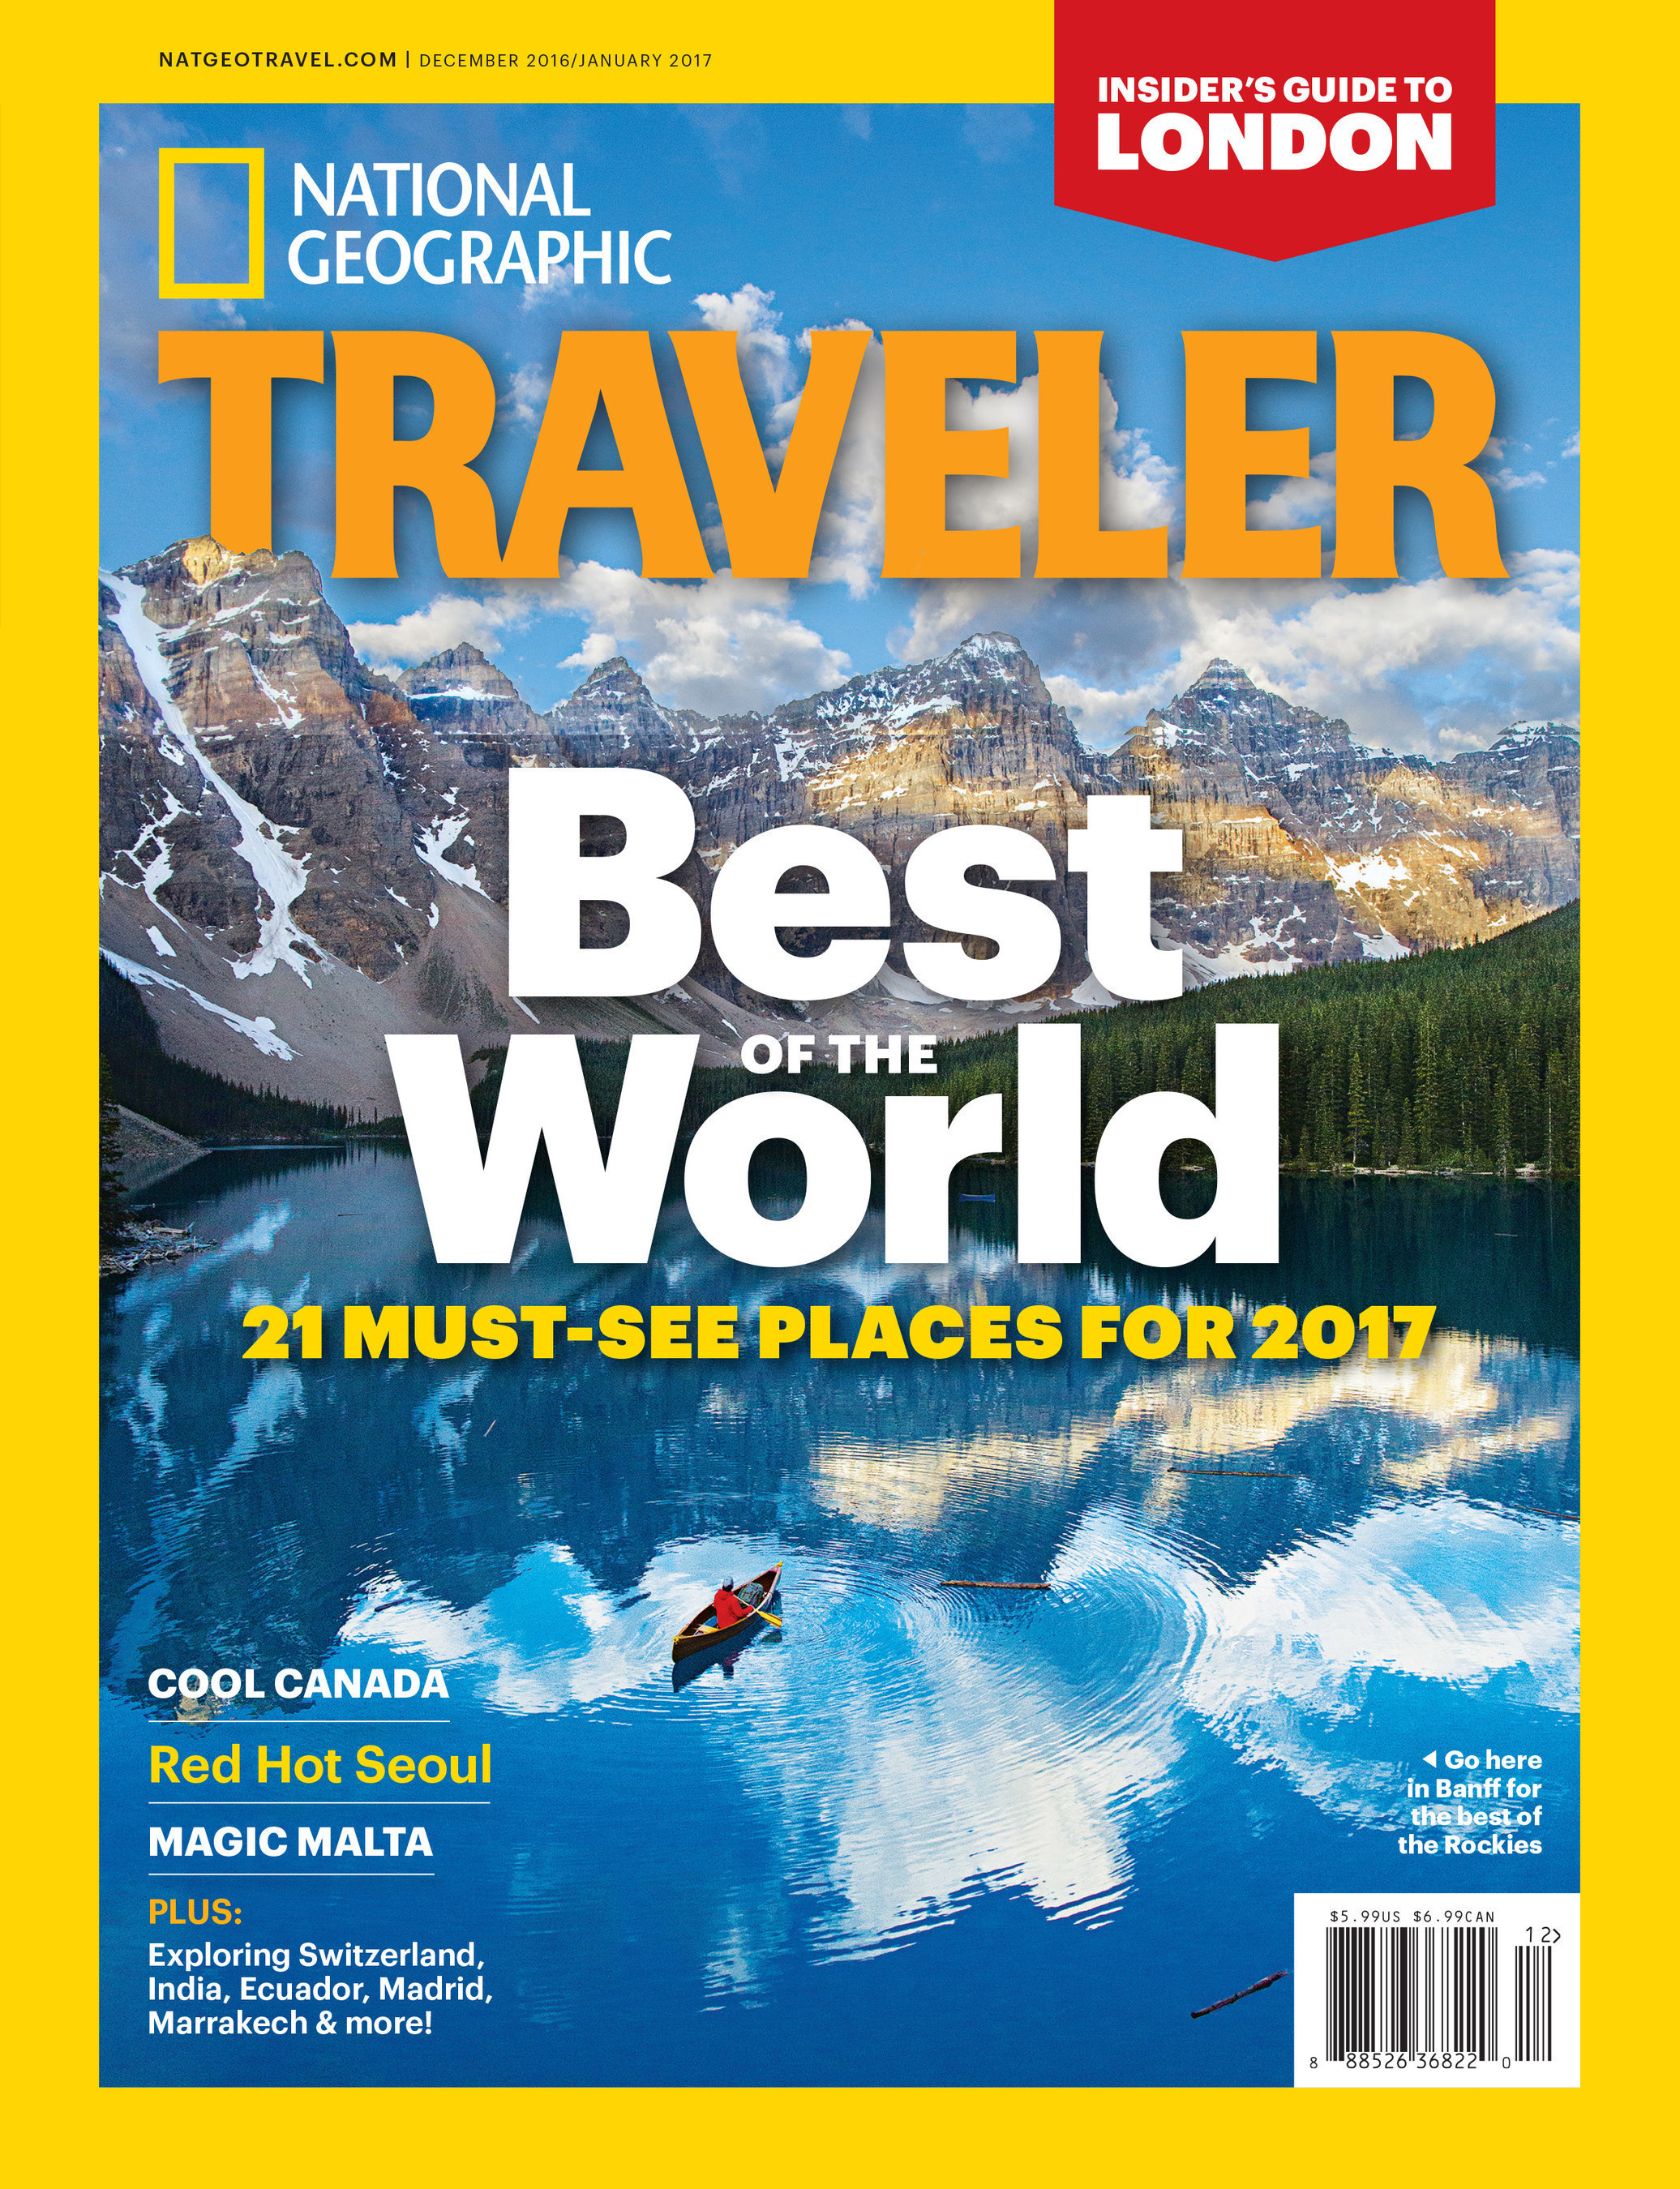 """National Geographic Traveler's December 2016/January 2017 """"Best of the World"""" issue."""